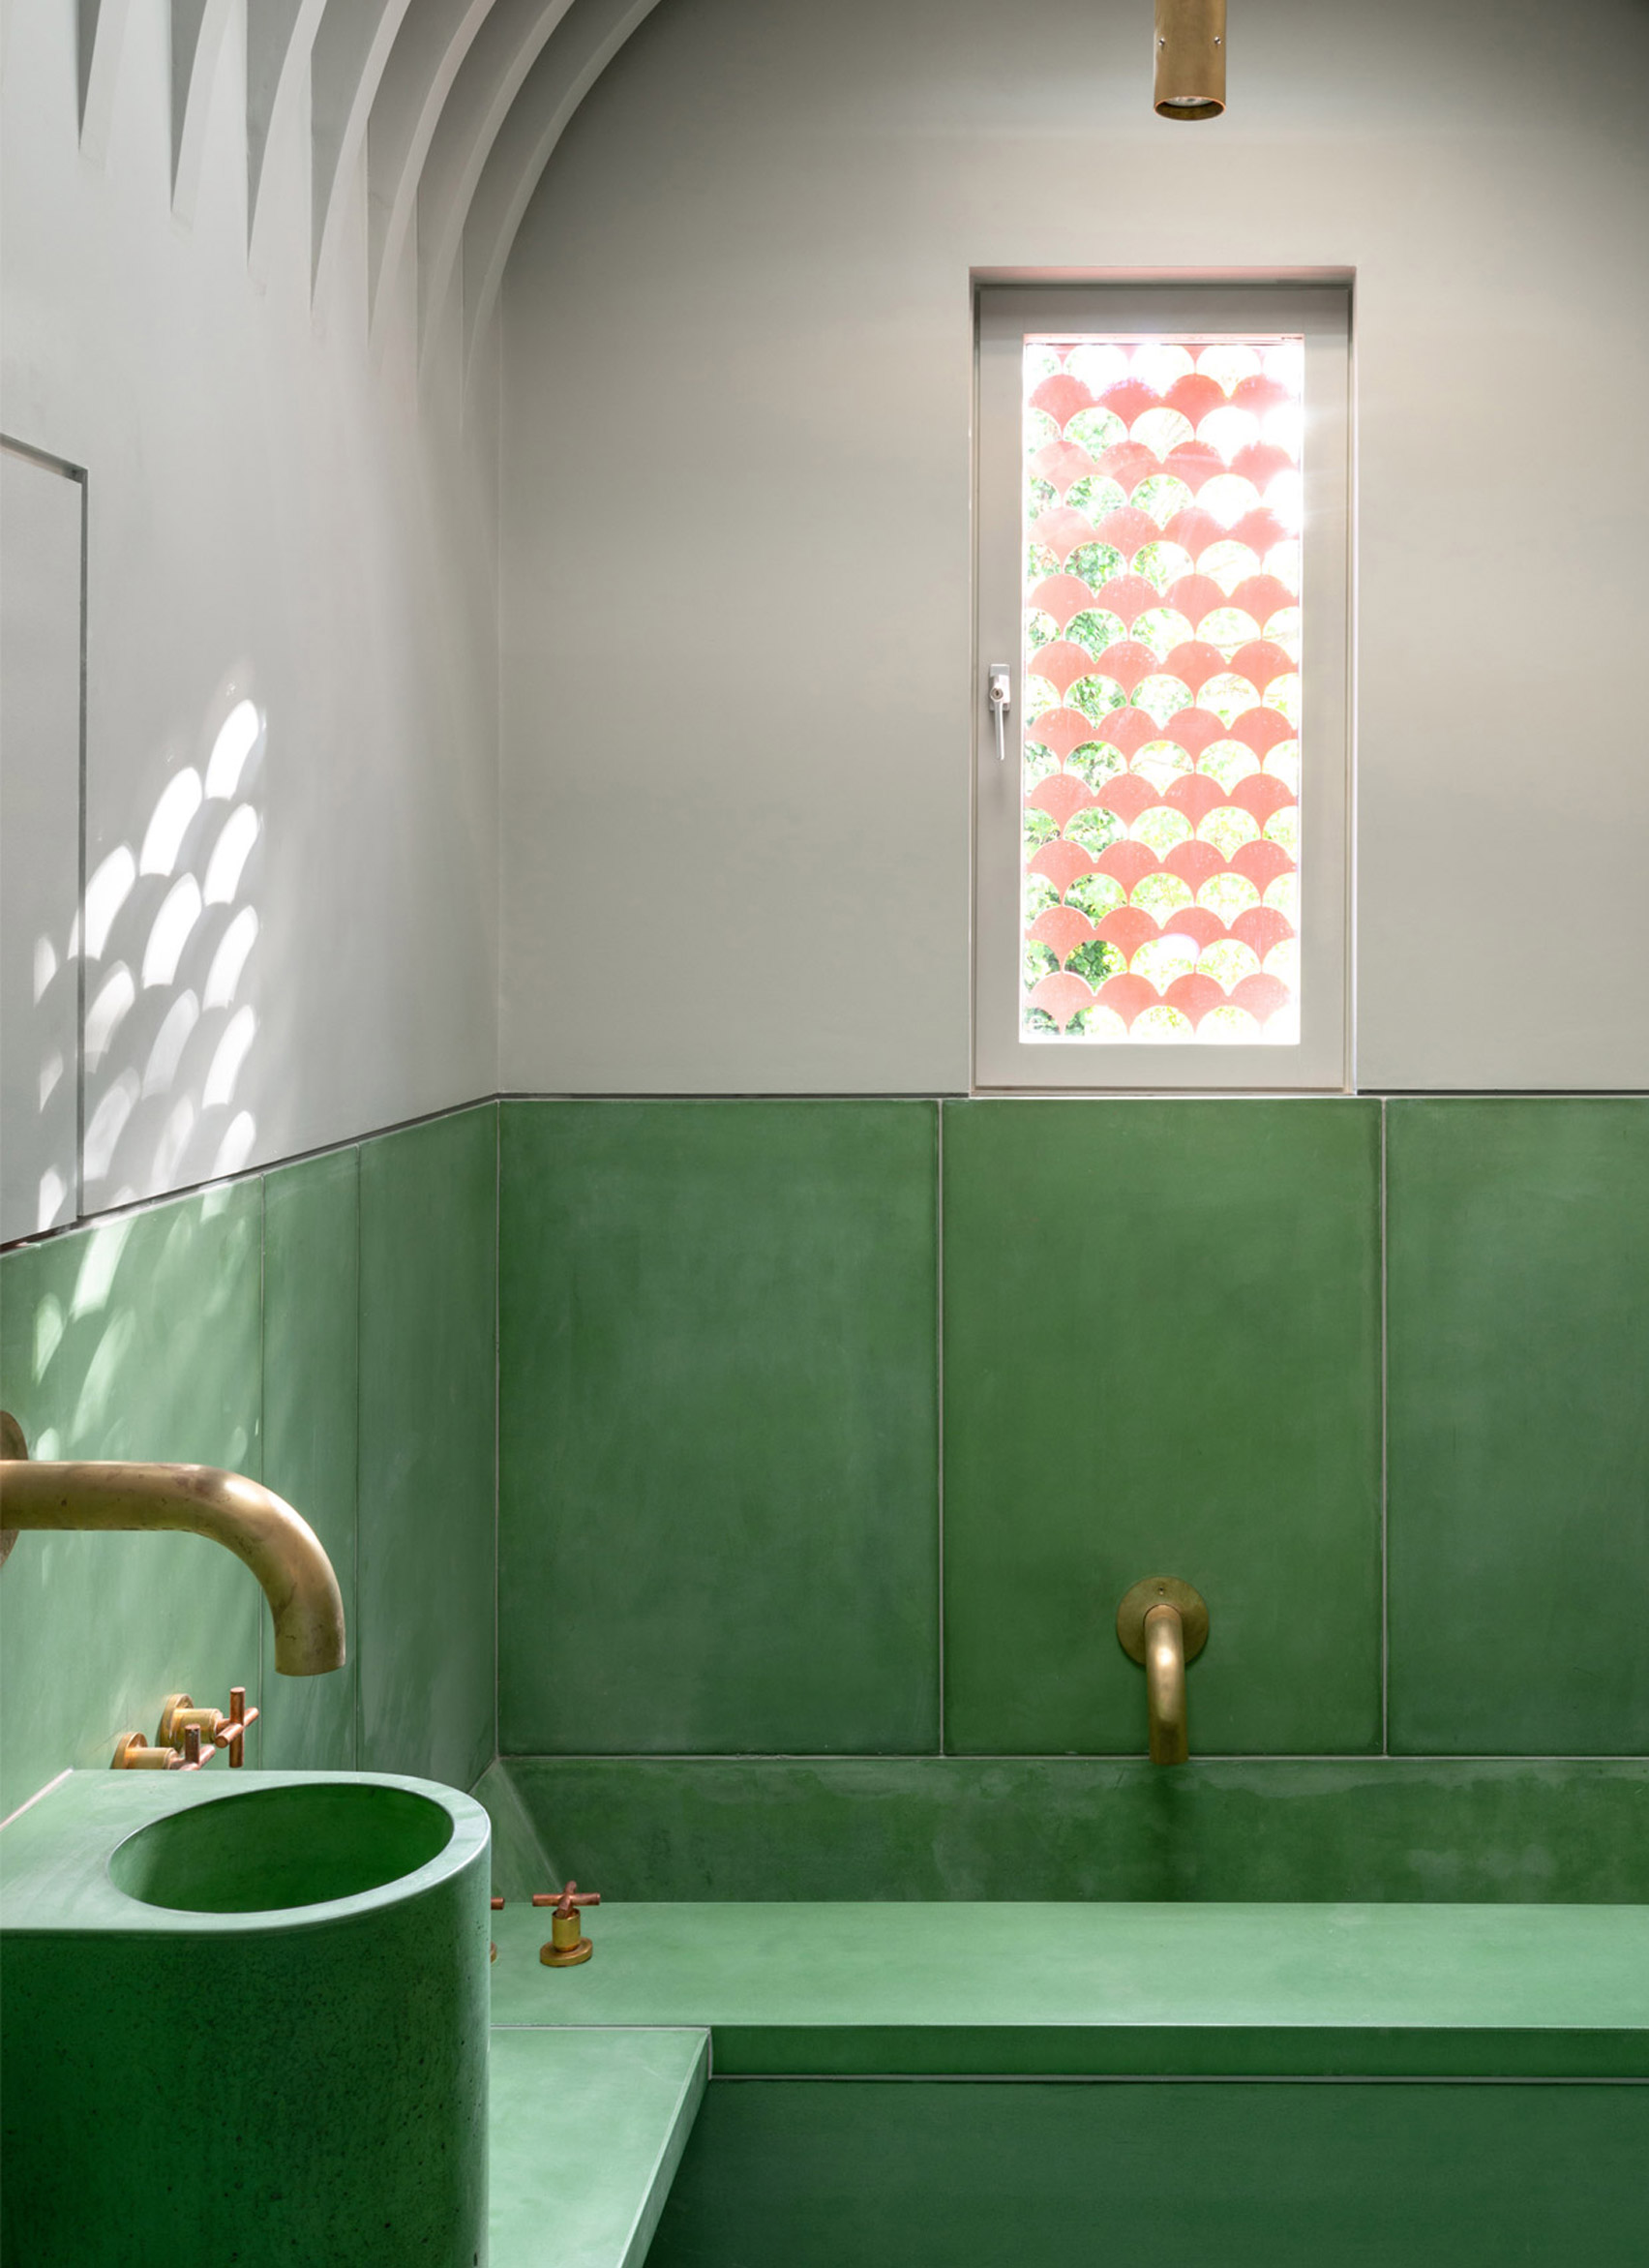 green tiled bathroom by Studio Ben Allen